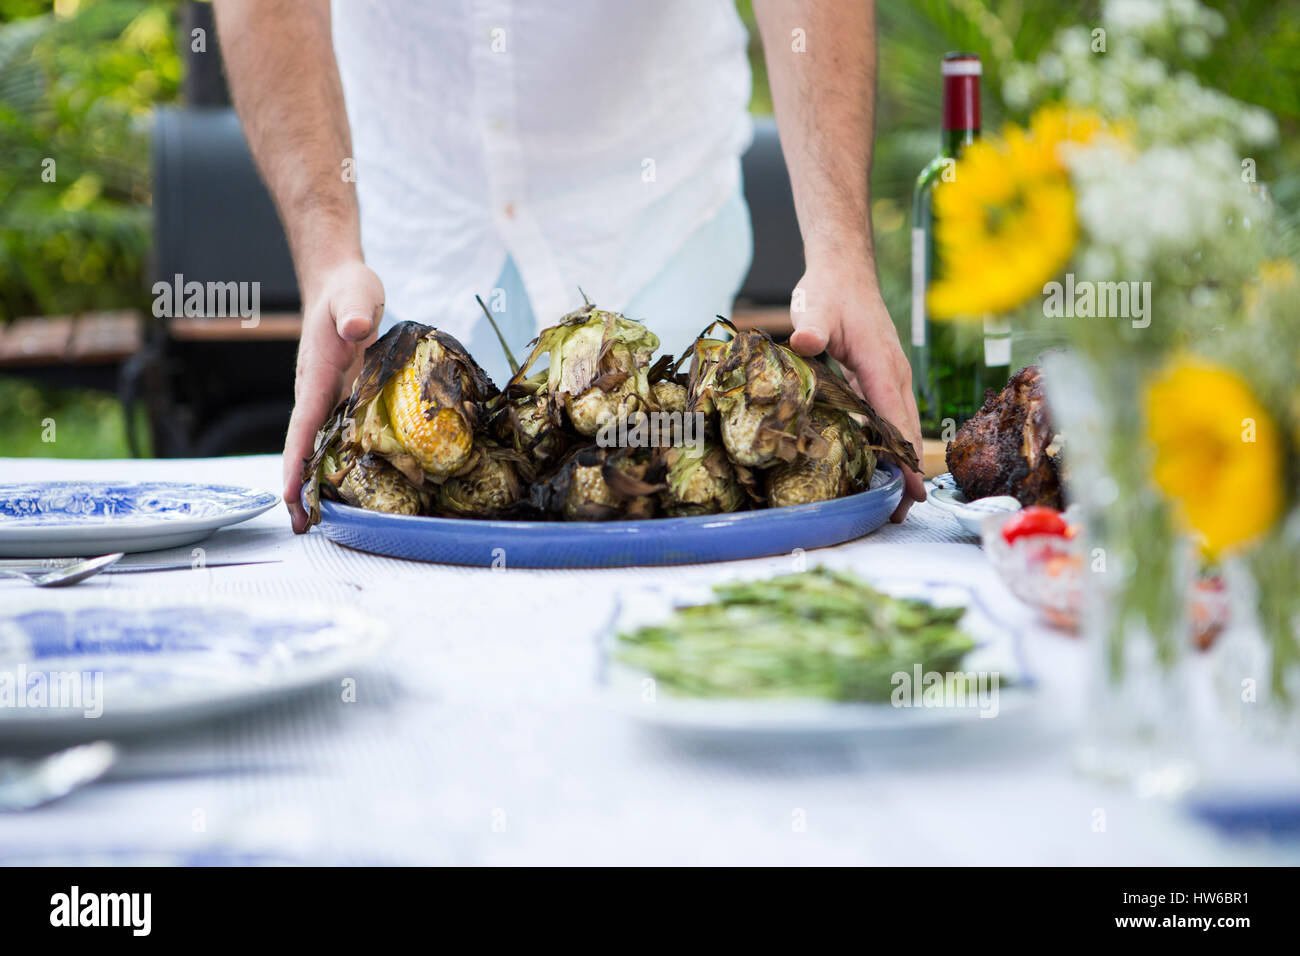 Grilled Corn on the Cob - Stock Image